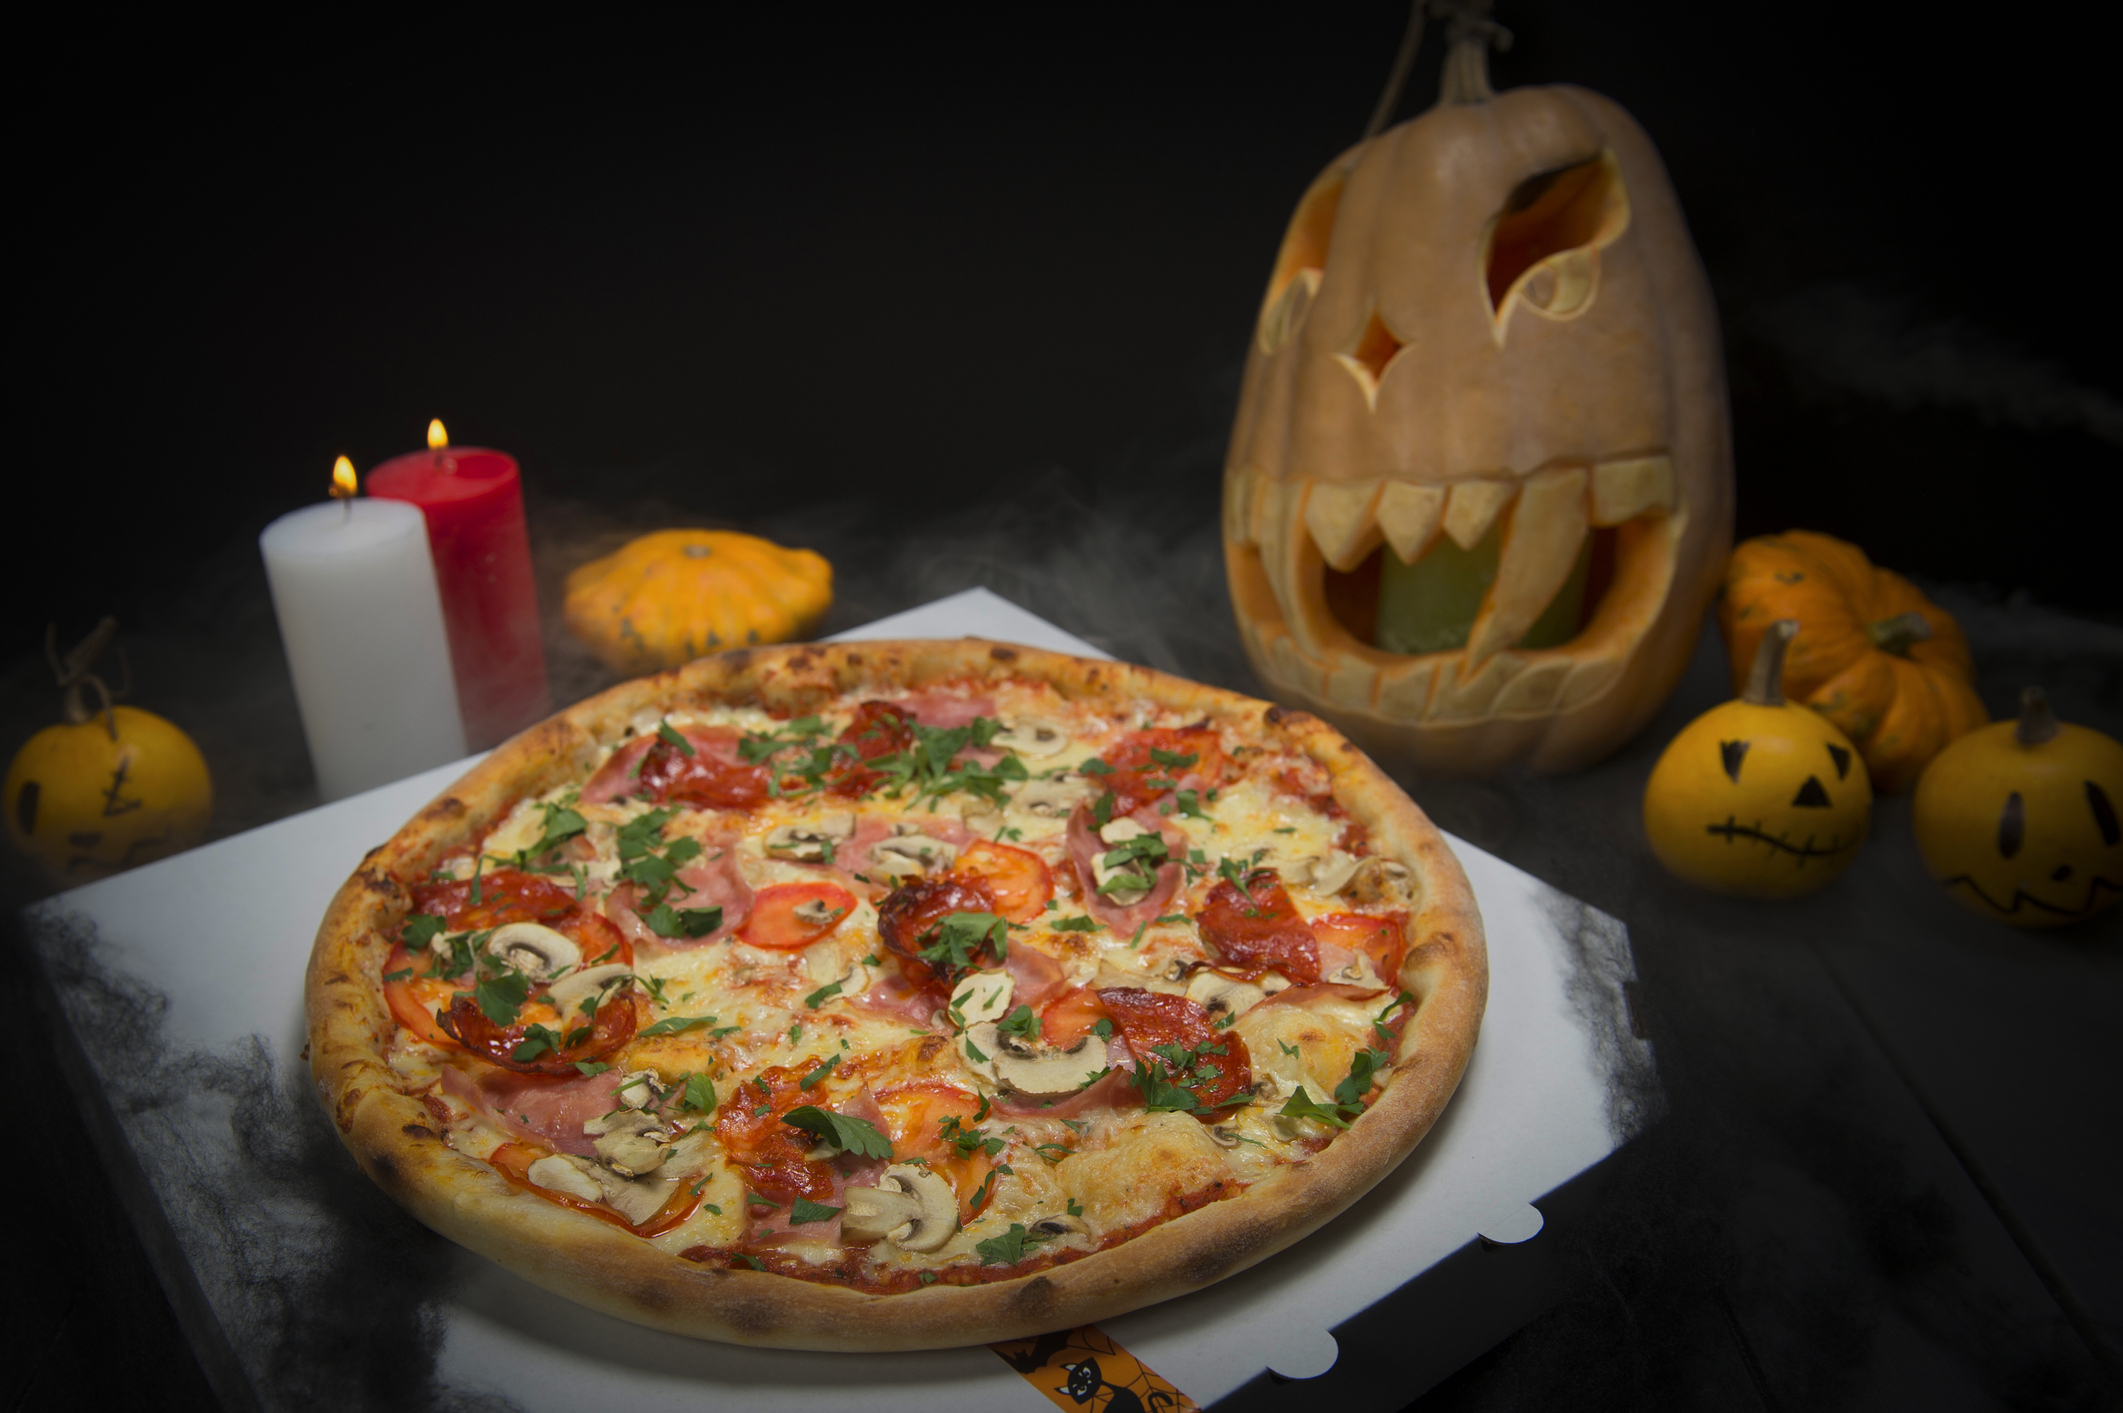 meat pizza near Halloween decoration: Scary pumpkins with painted faces, Lights of burning candles In horror smoke.